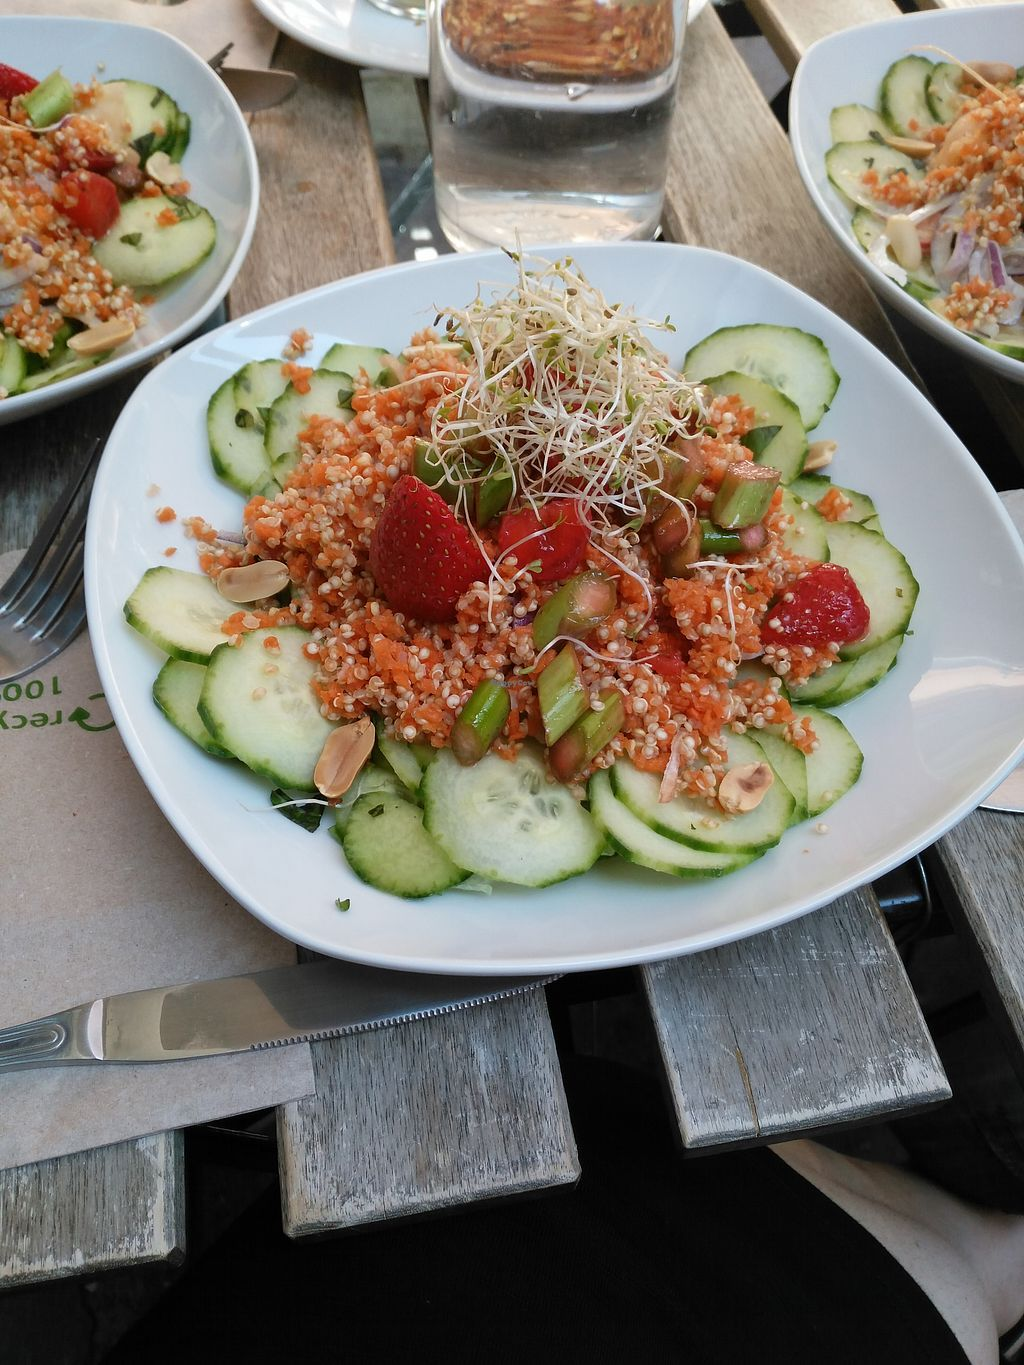 """Photo of Cafe Vert  by <a href=""""/members/profile/AudreyA"""">AudreyA</a> <br/>Summer brunch with courgettes, carrots, peanuts, strawberries <br/> September 7, 2017  - <a href='/contact/abuse/image/82634/301718'>Report</a>"""